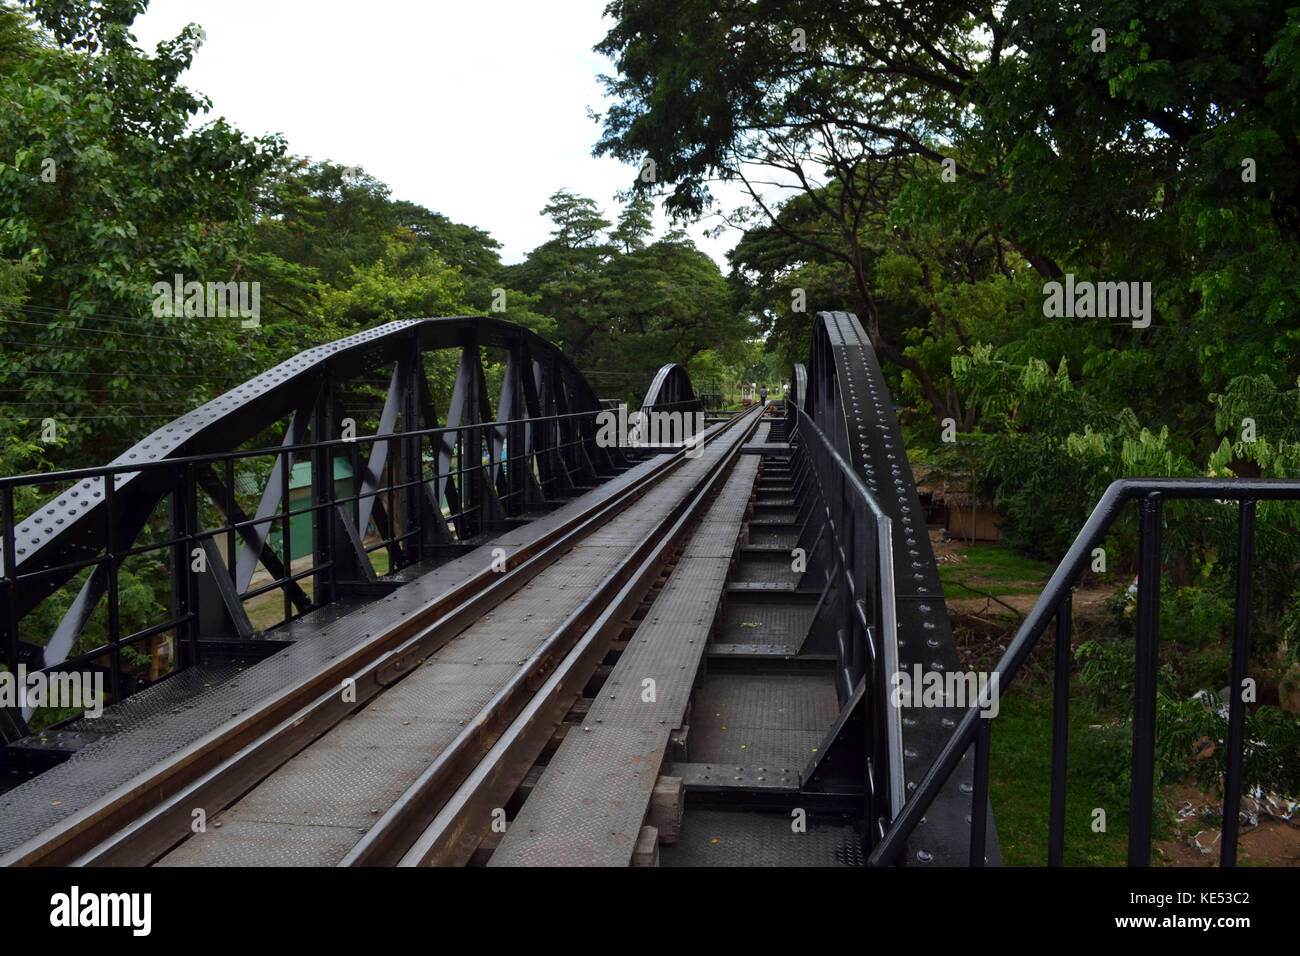 Closer walk to the famous sightseeing spots around Kanchanaburi, Thailand. This one is the infamous River Kwai Bridge. - Stock Image